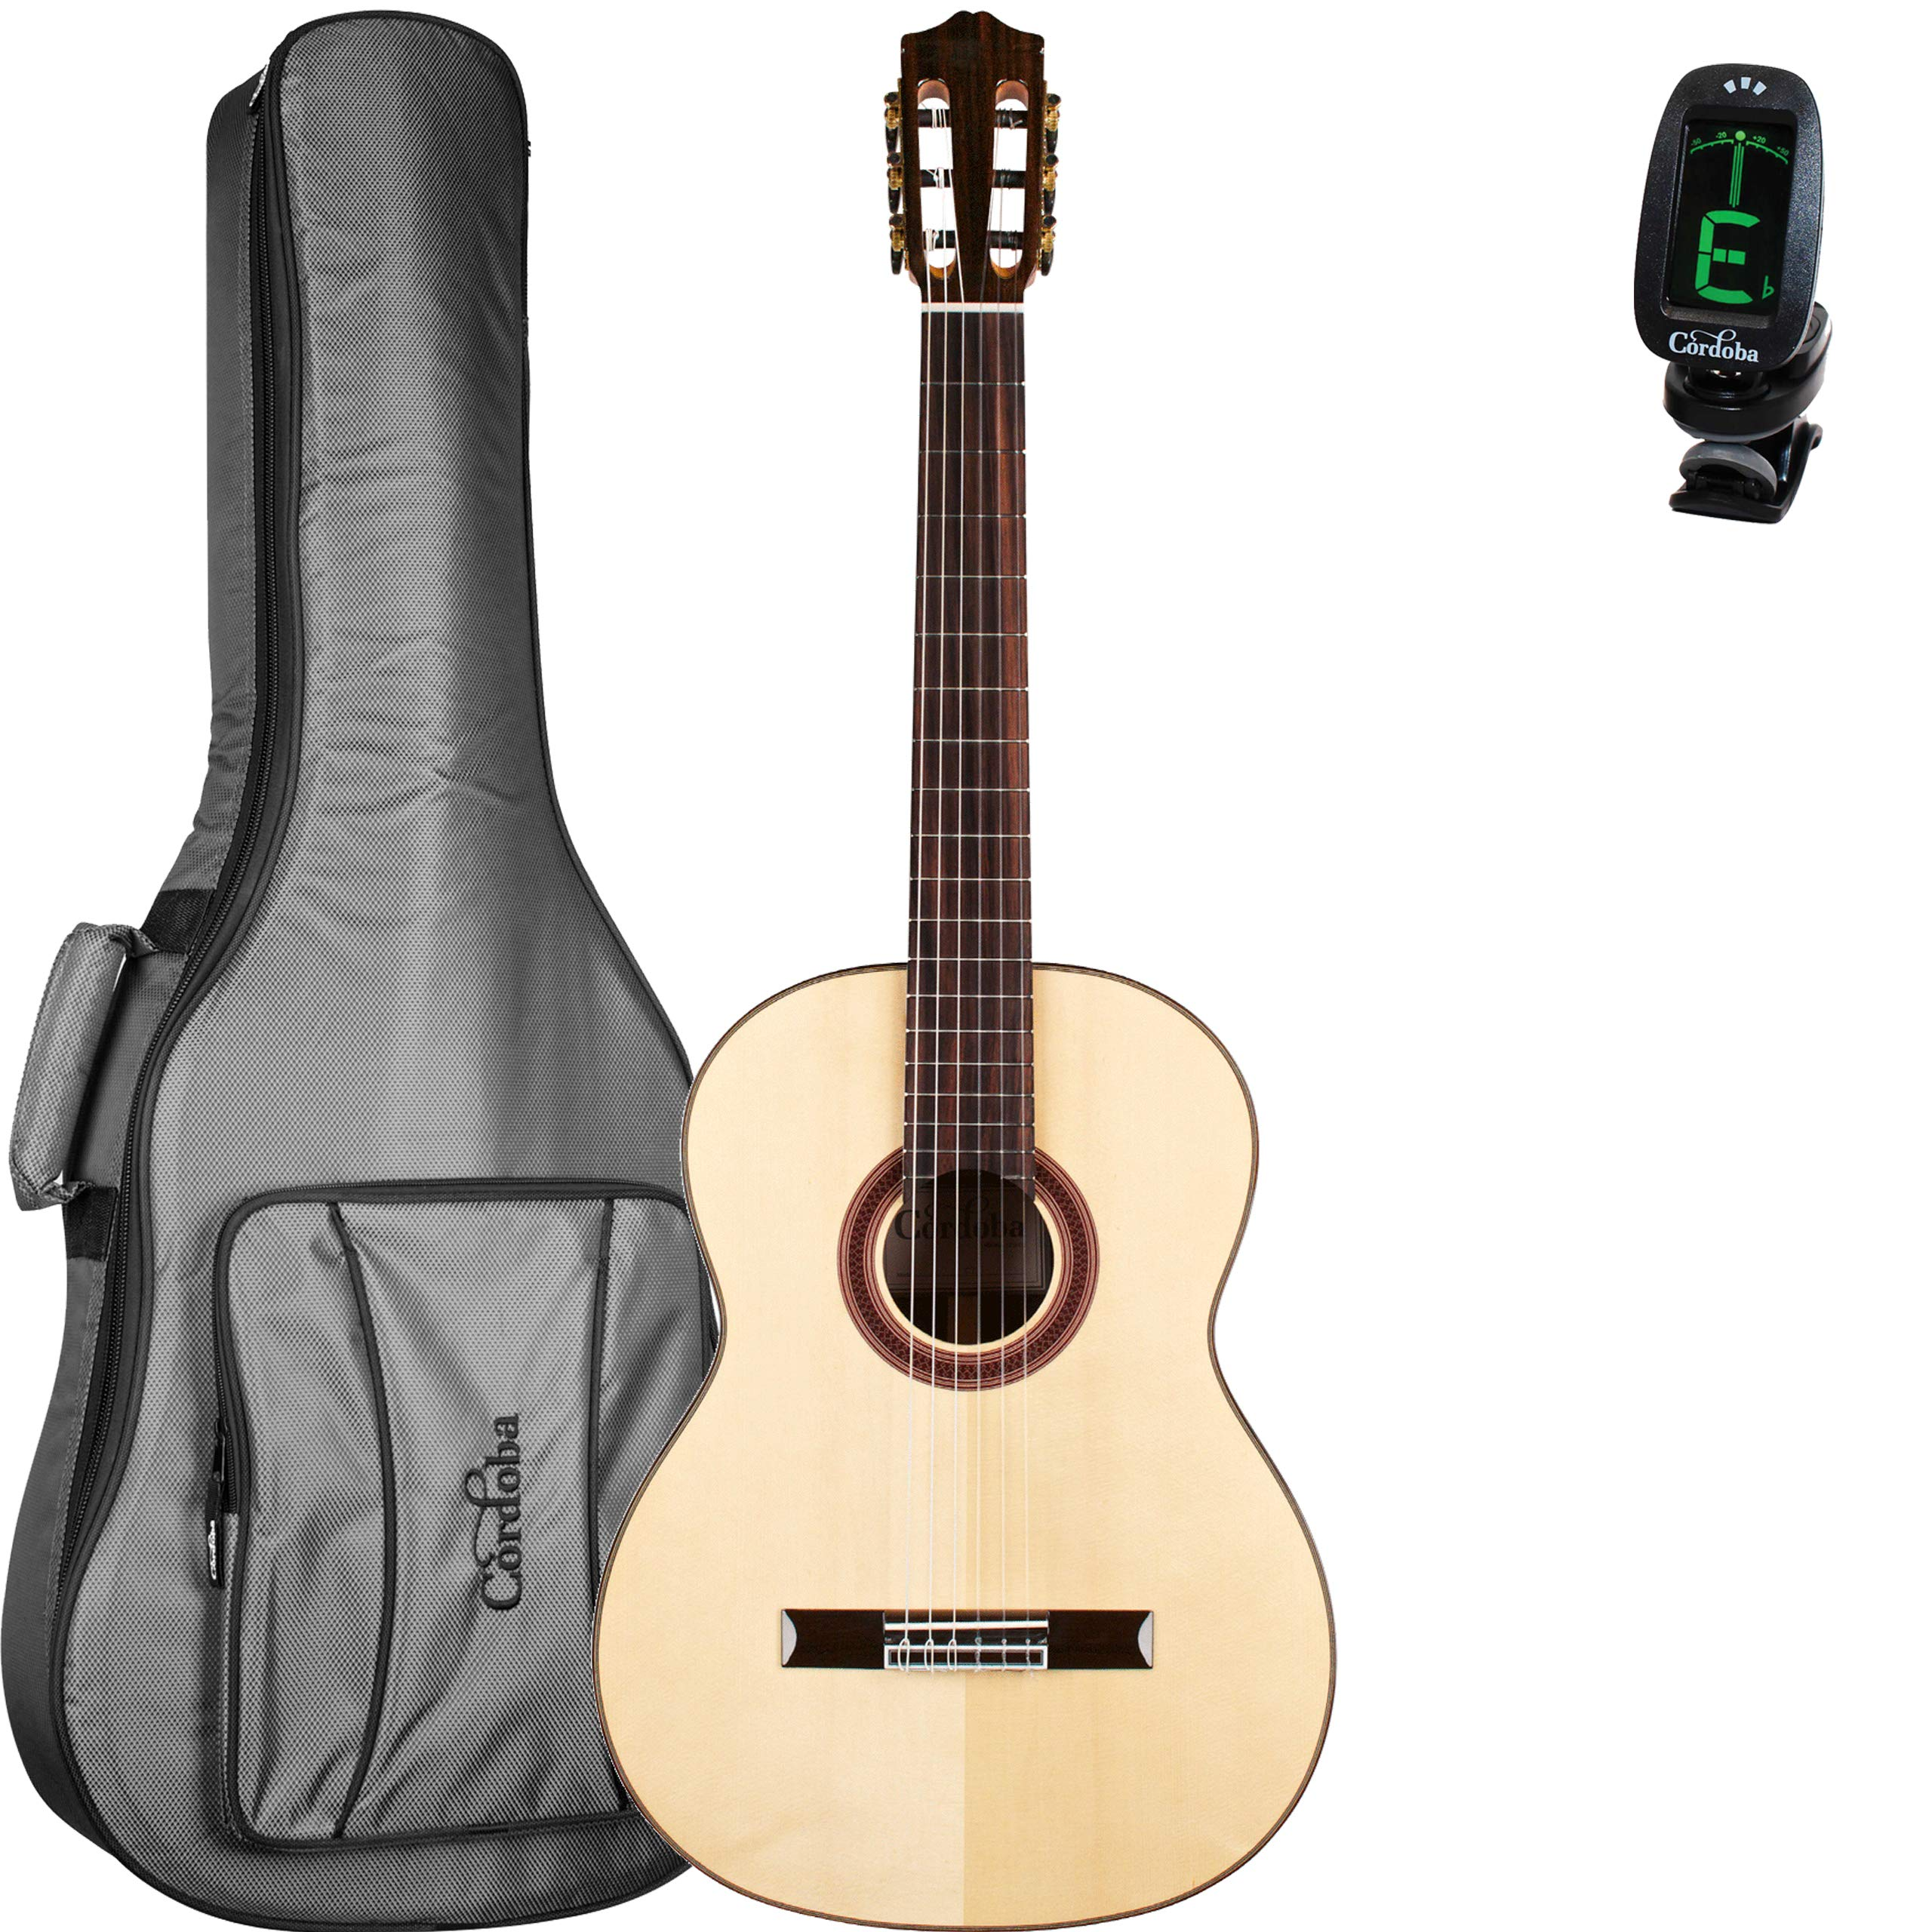 Cordoba C7 SP Acoustic Nylon String Classical Guitar Bundle With Deluxe Gig Bag and Cordoba Clip-On Tuner